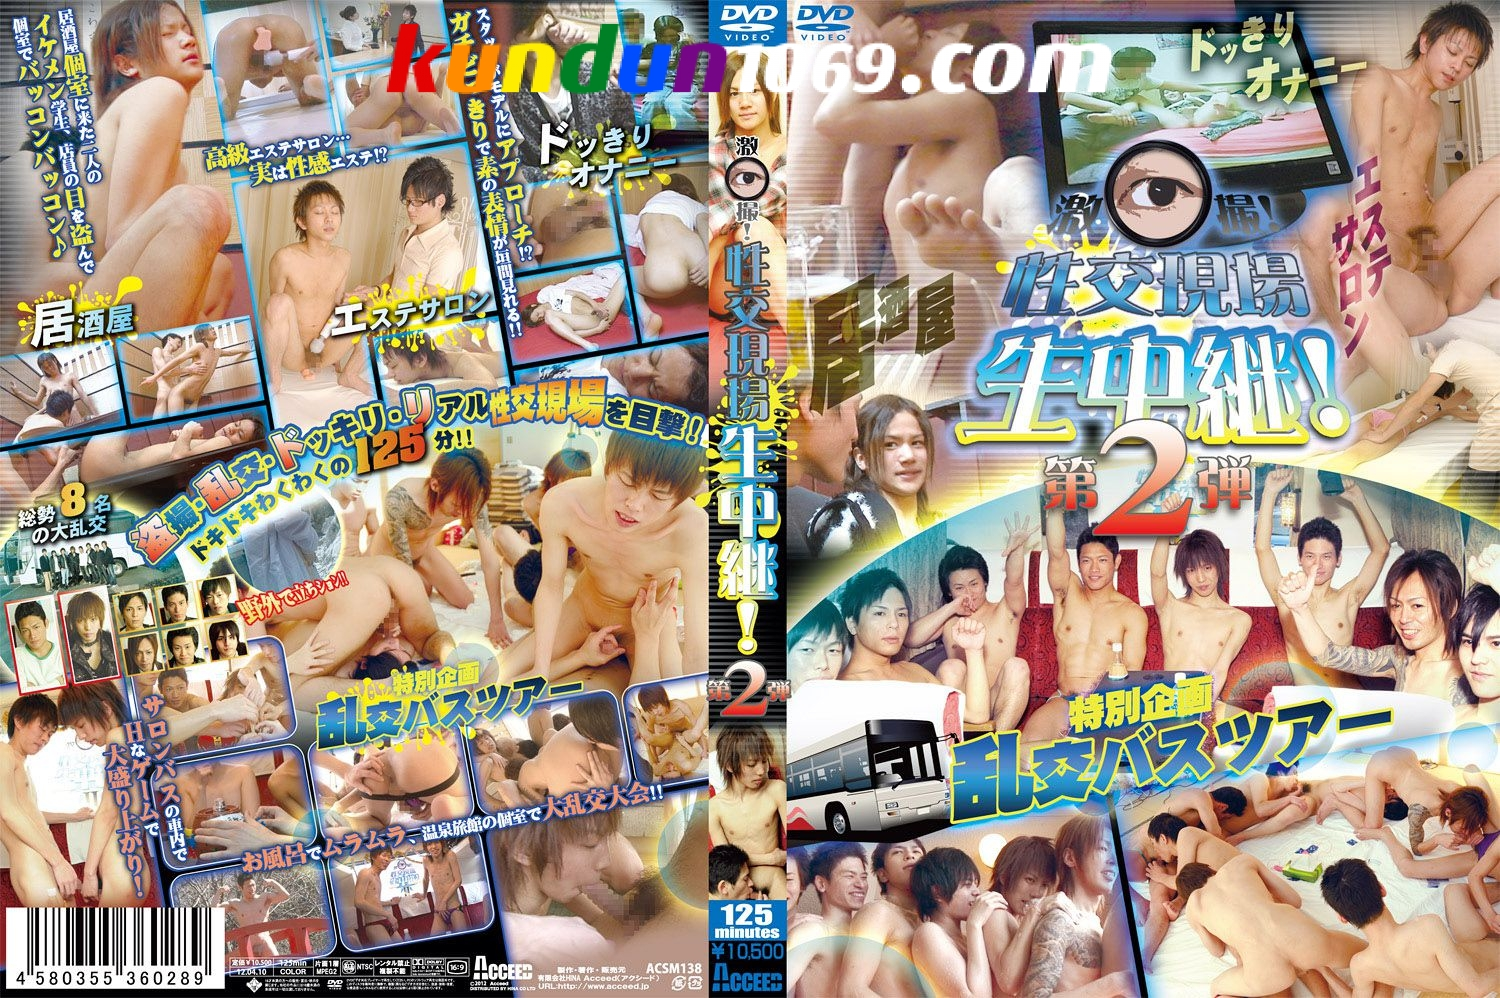 [ACCEED] ULTRA CAMERA! SEX ON-SITE LIVE BROADCAST! 2 (激撮! 性交現場生中継! 2)